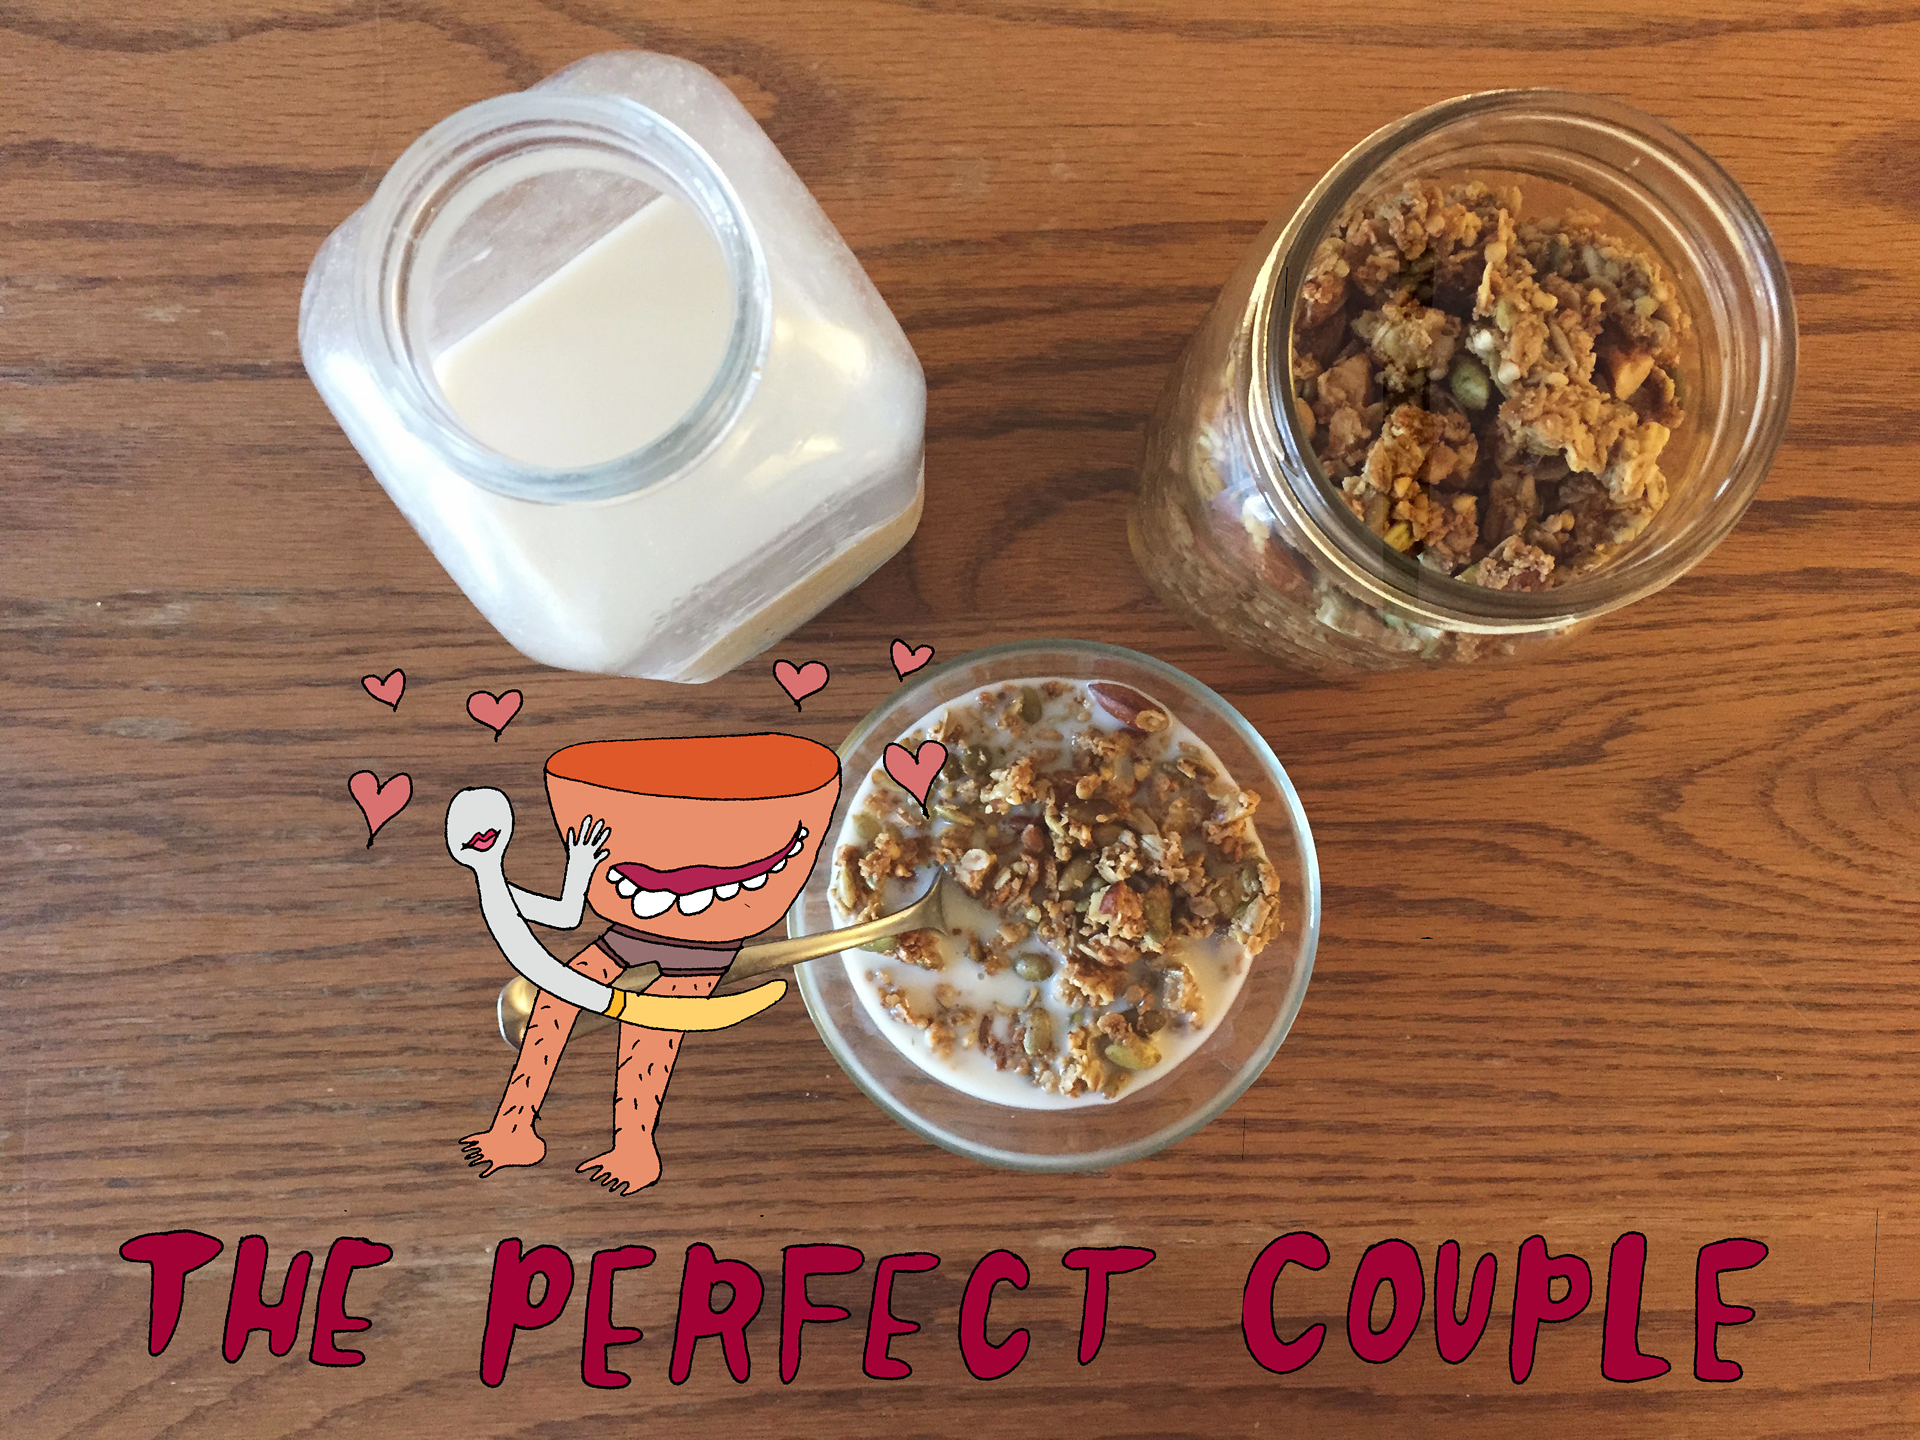 The Perfect Couple: Granola and Almond Milk